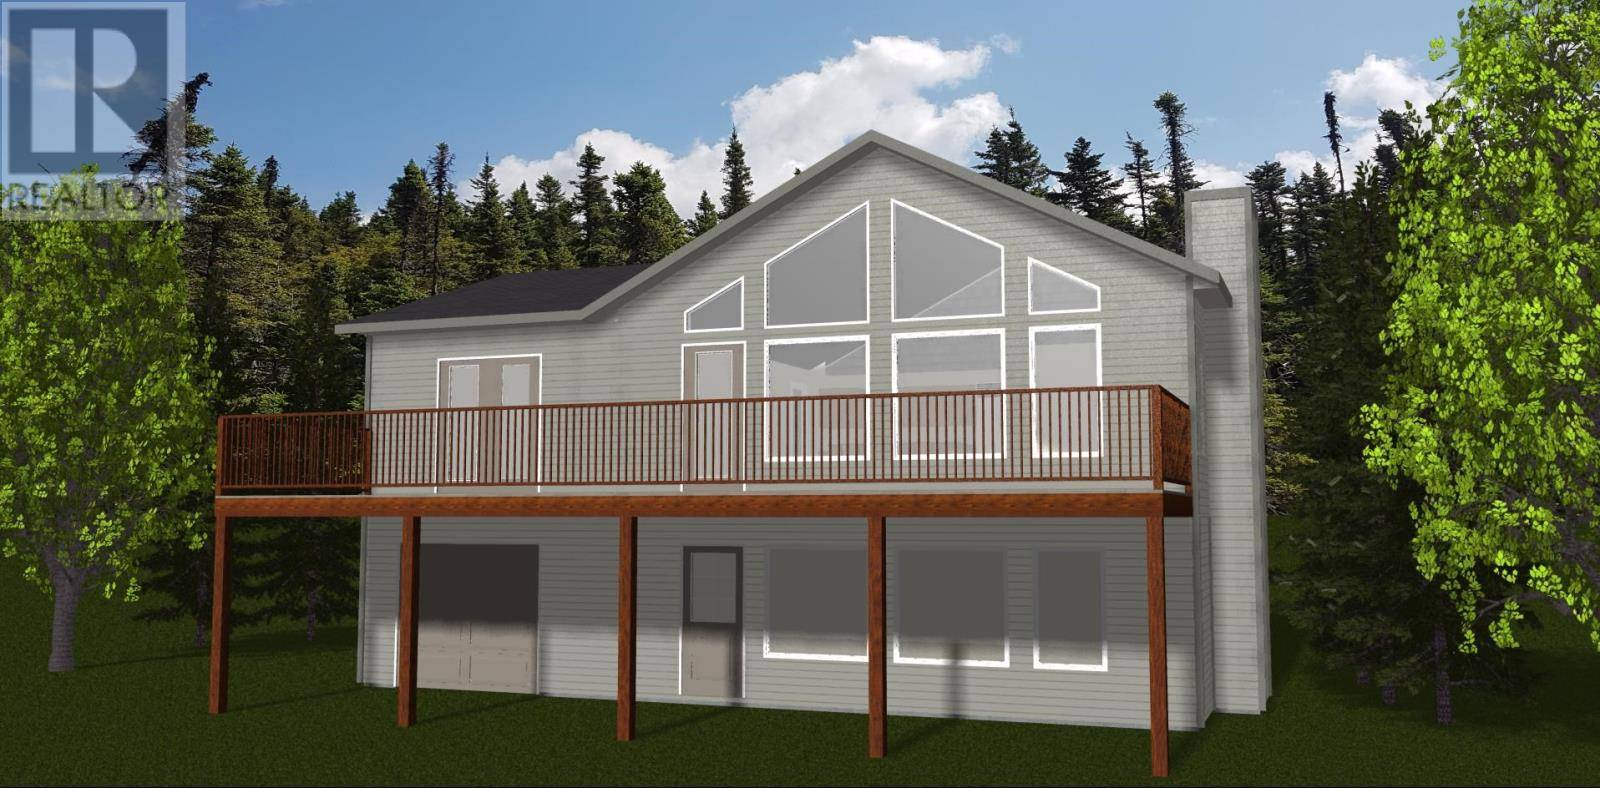 Residential property for sale at 40 Ocean Pond Cottage Development Rd Ocean Pond Newfoundland - MLS: 1199436